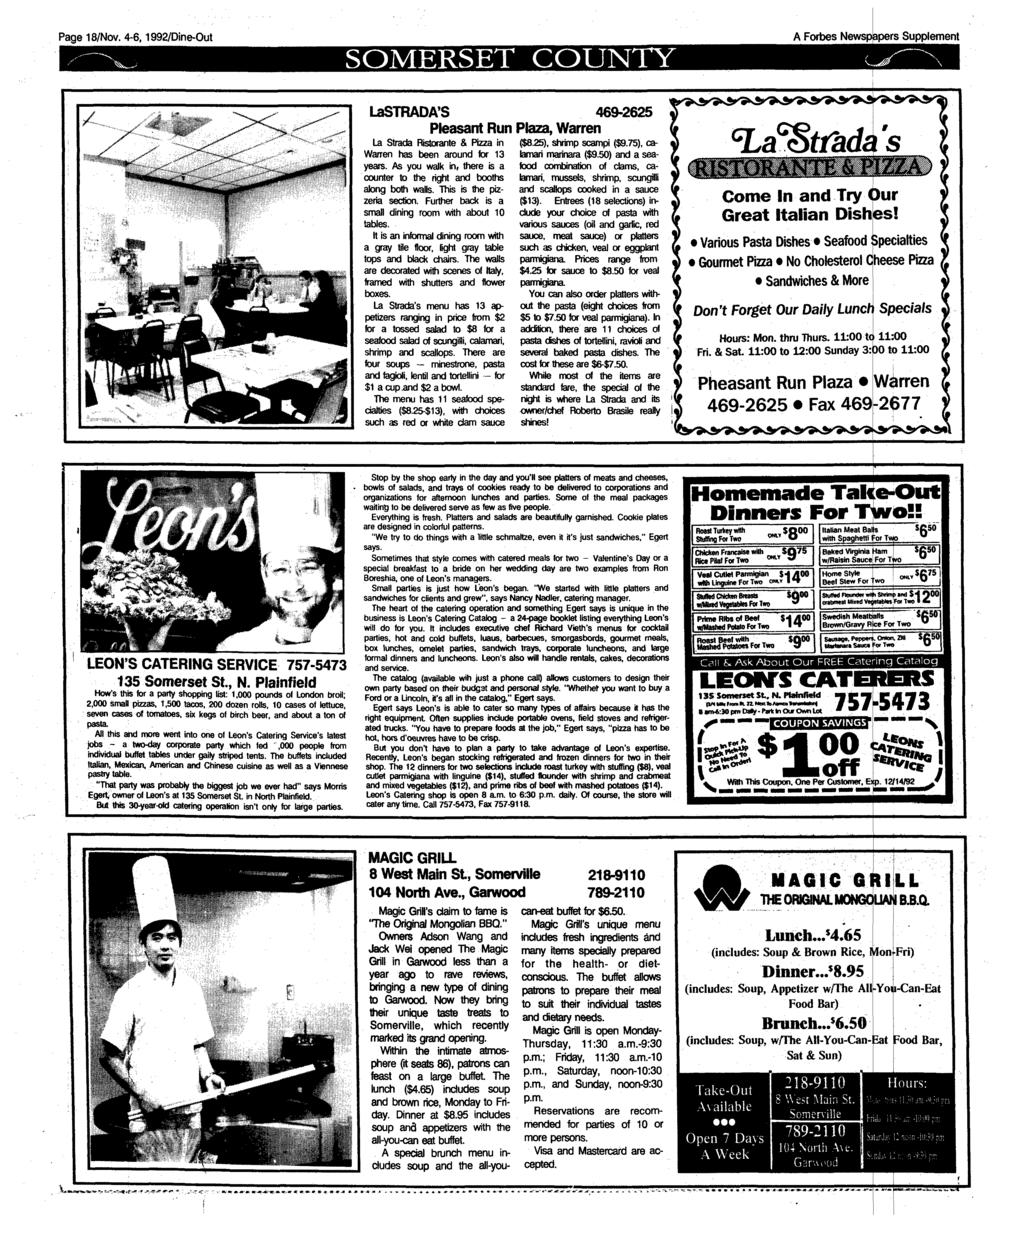 Page 18/Nov. 4-6,1992/Dine-Out SOMERSET COUNTY A Forbes Newspapers Supplement LaSTRADA'S Pleasant Run La Strada Ristorante & Pizza in Warren has been around for 13 years.